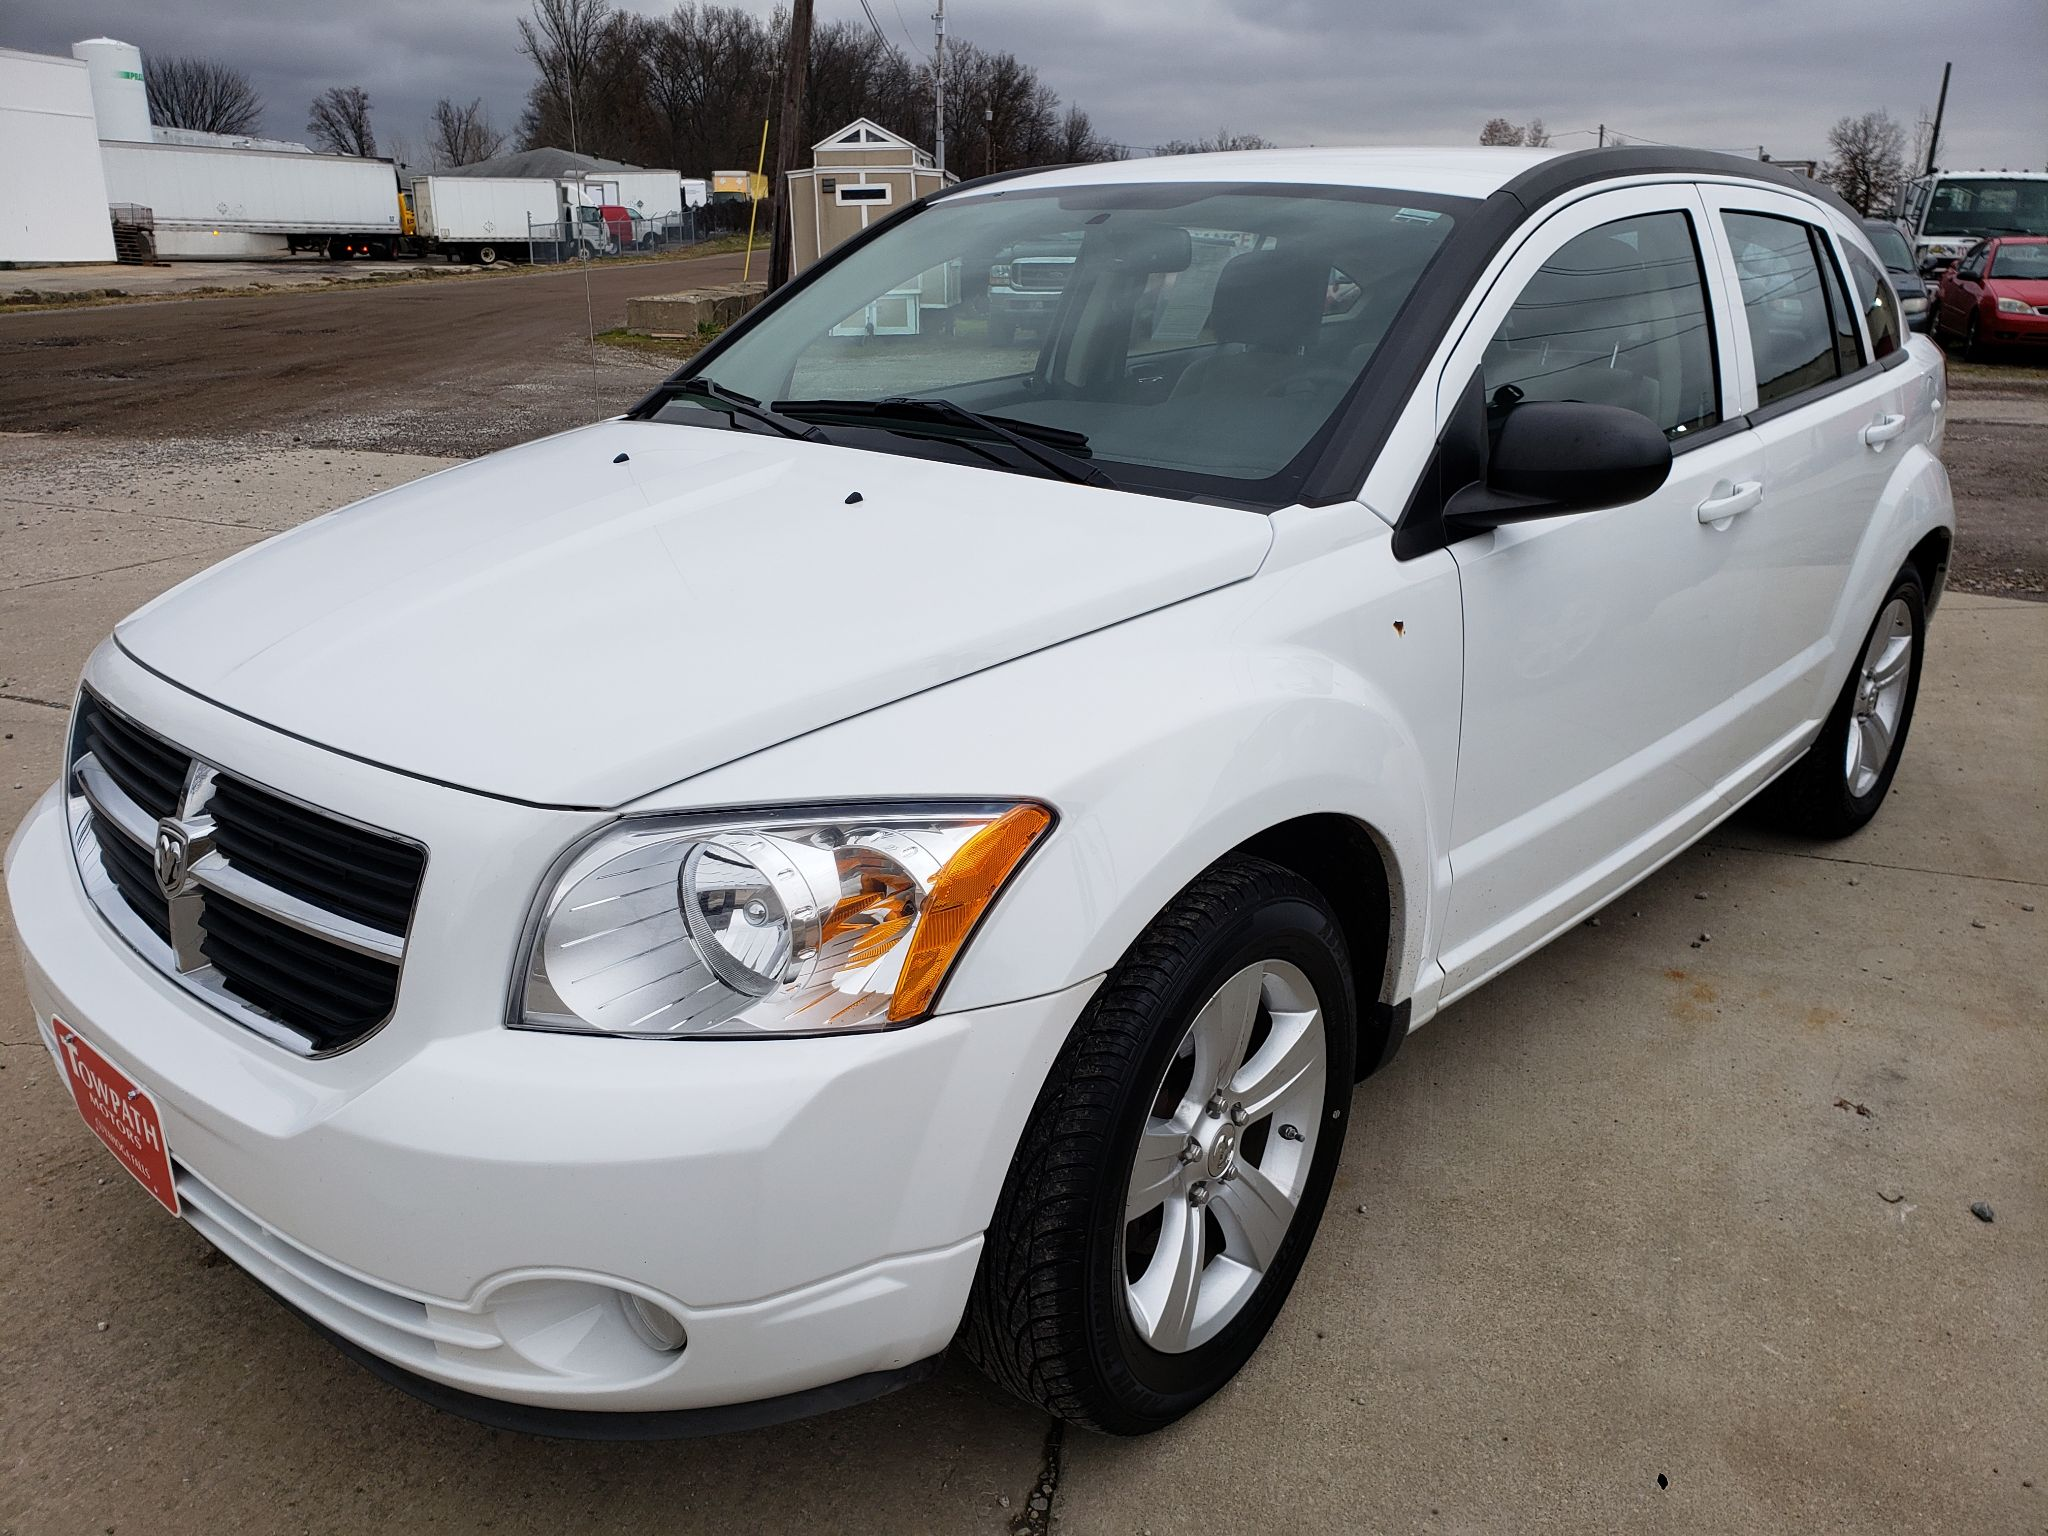 2012 Dodge Caliber for sale at Towpath Motors | Used Car Dealer in Peninsula Ohio